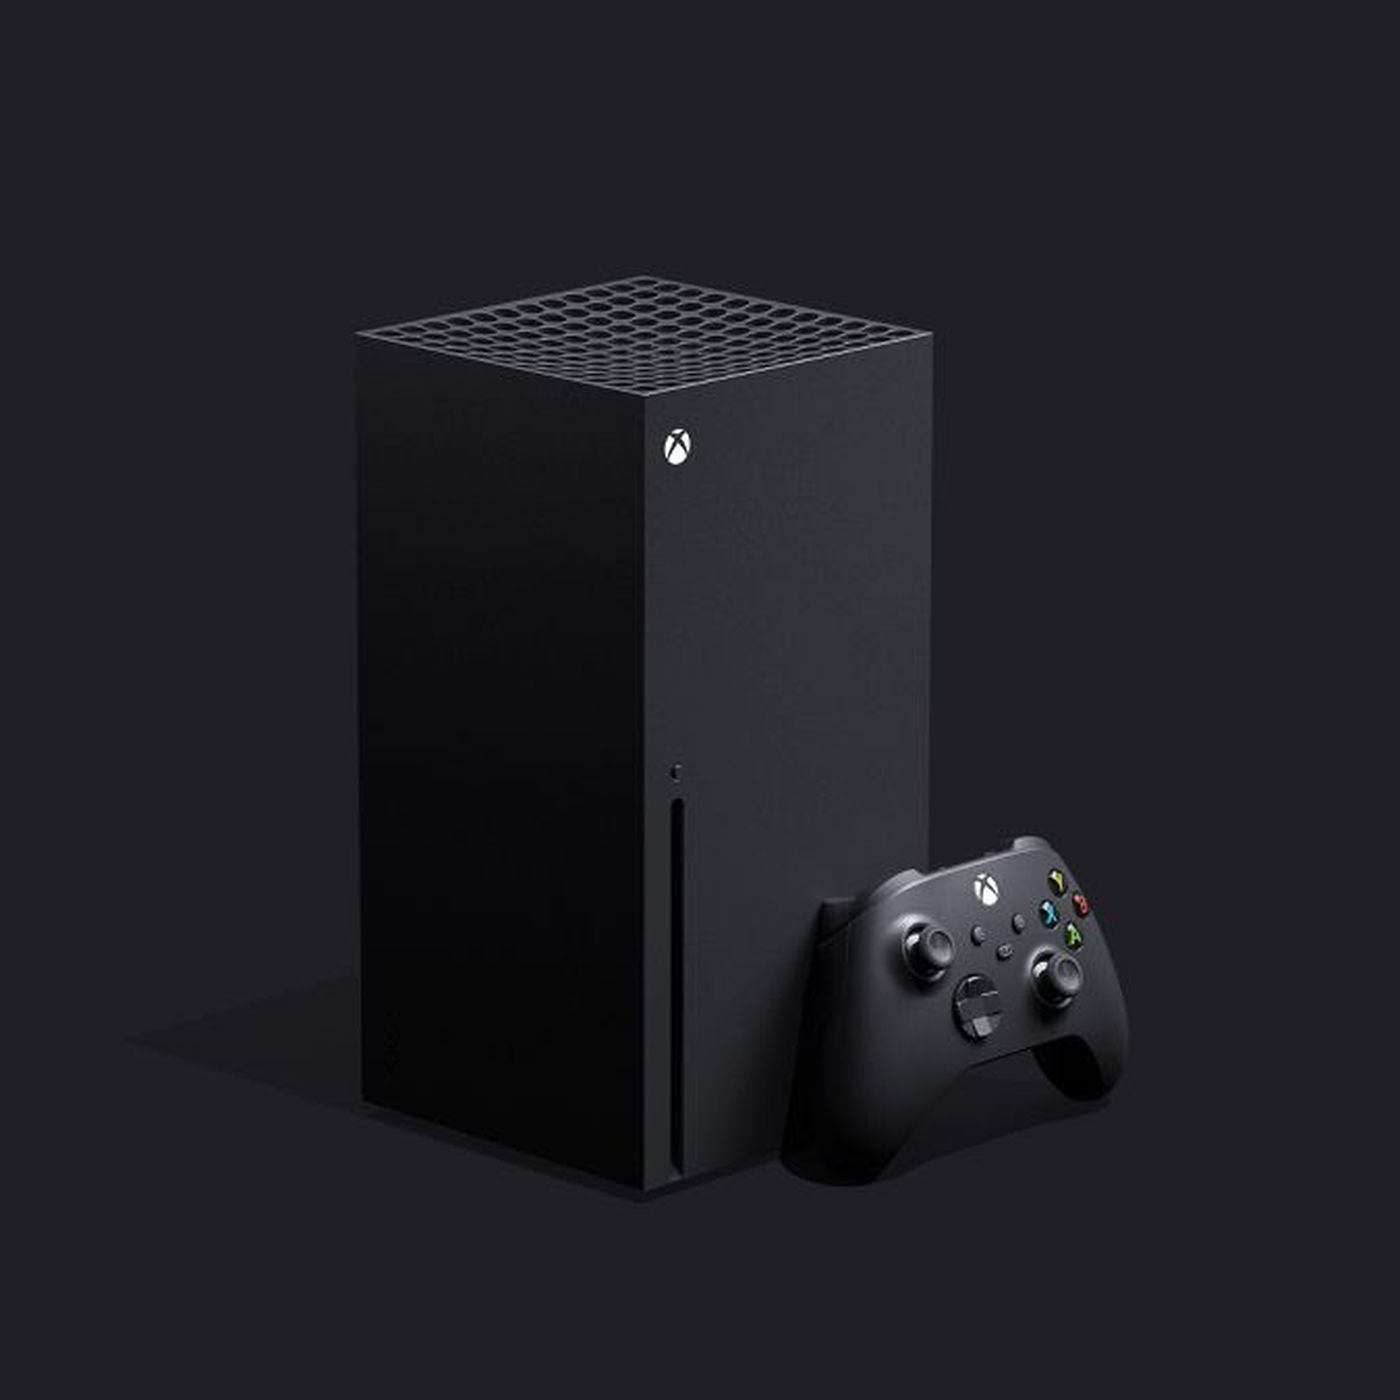 Microsoft S Xbox Series X Will Be Able To Resume Games Even After A Reboot The Verge